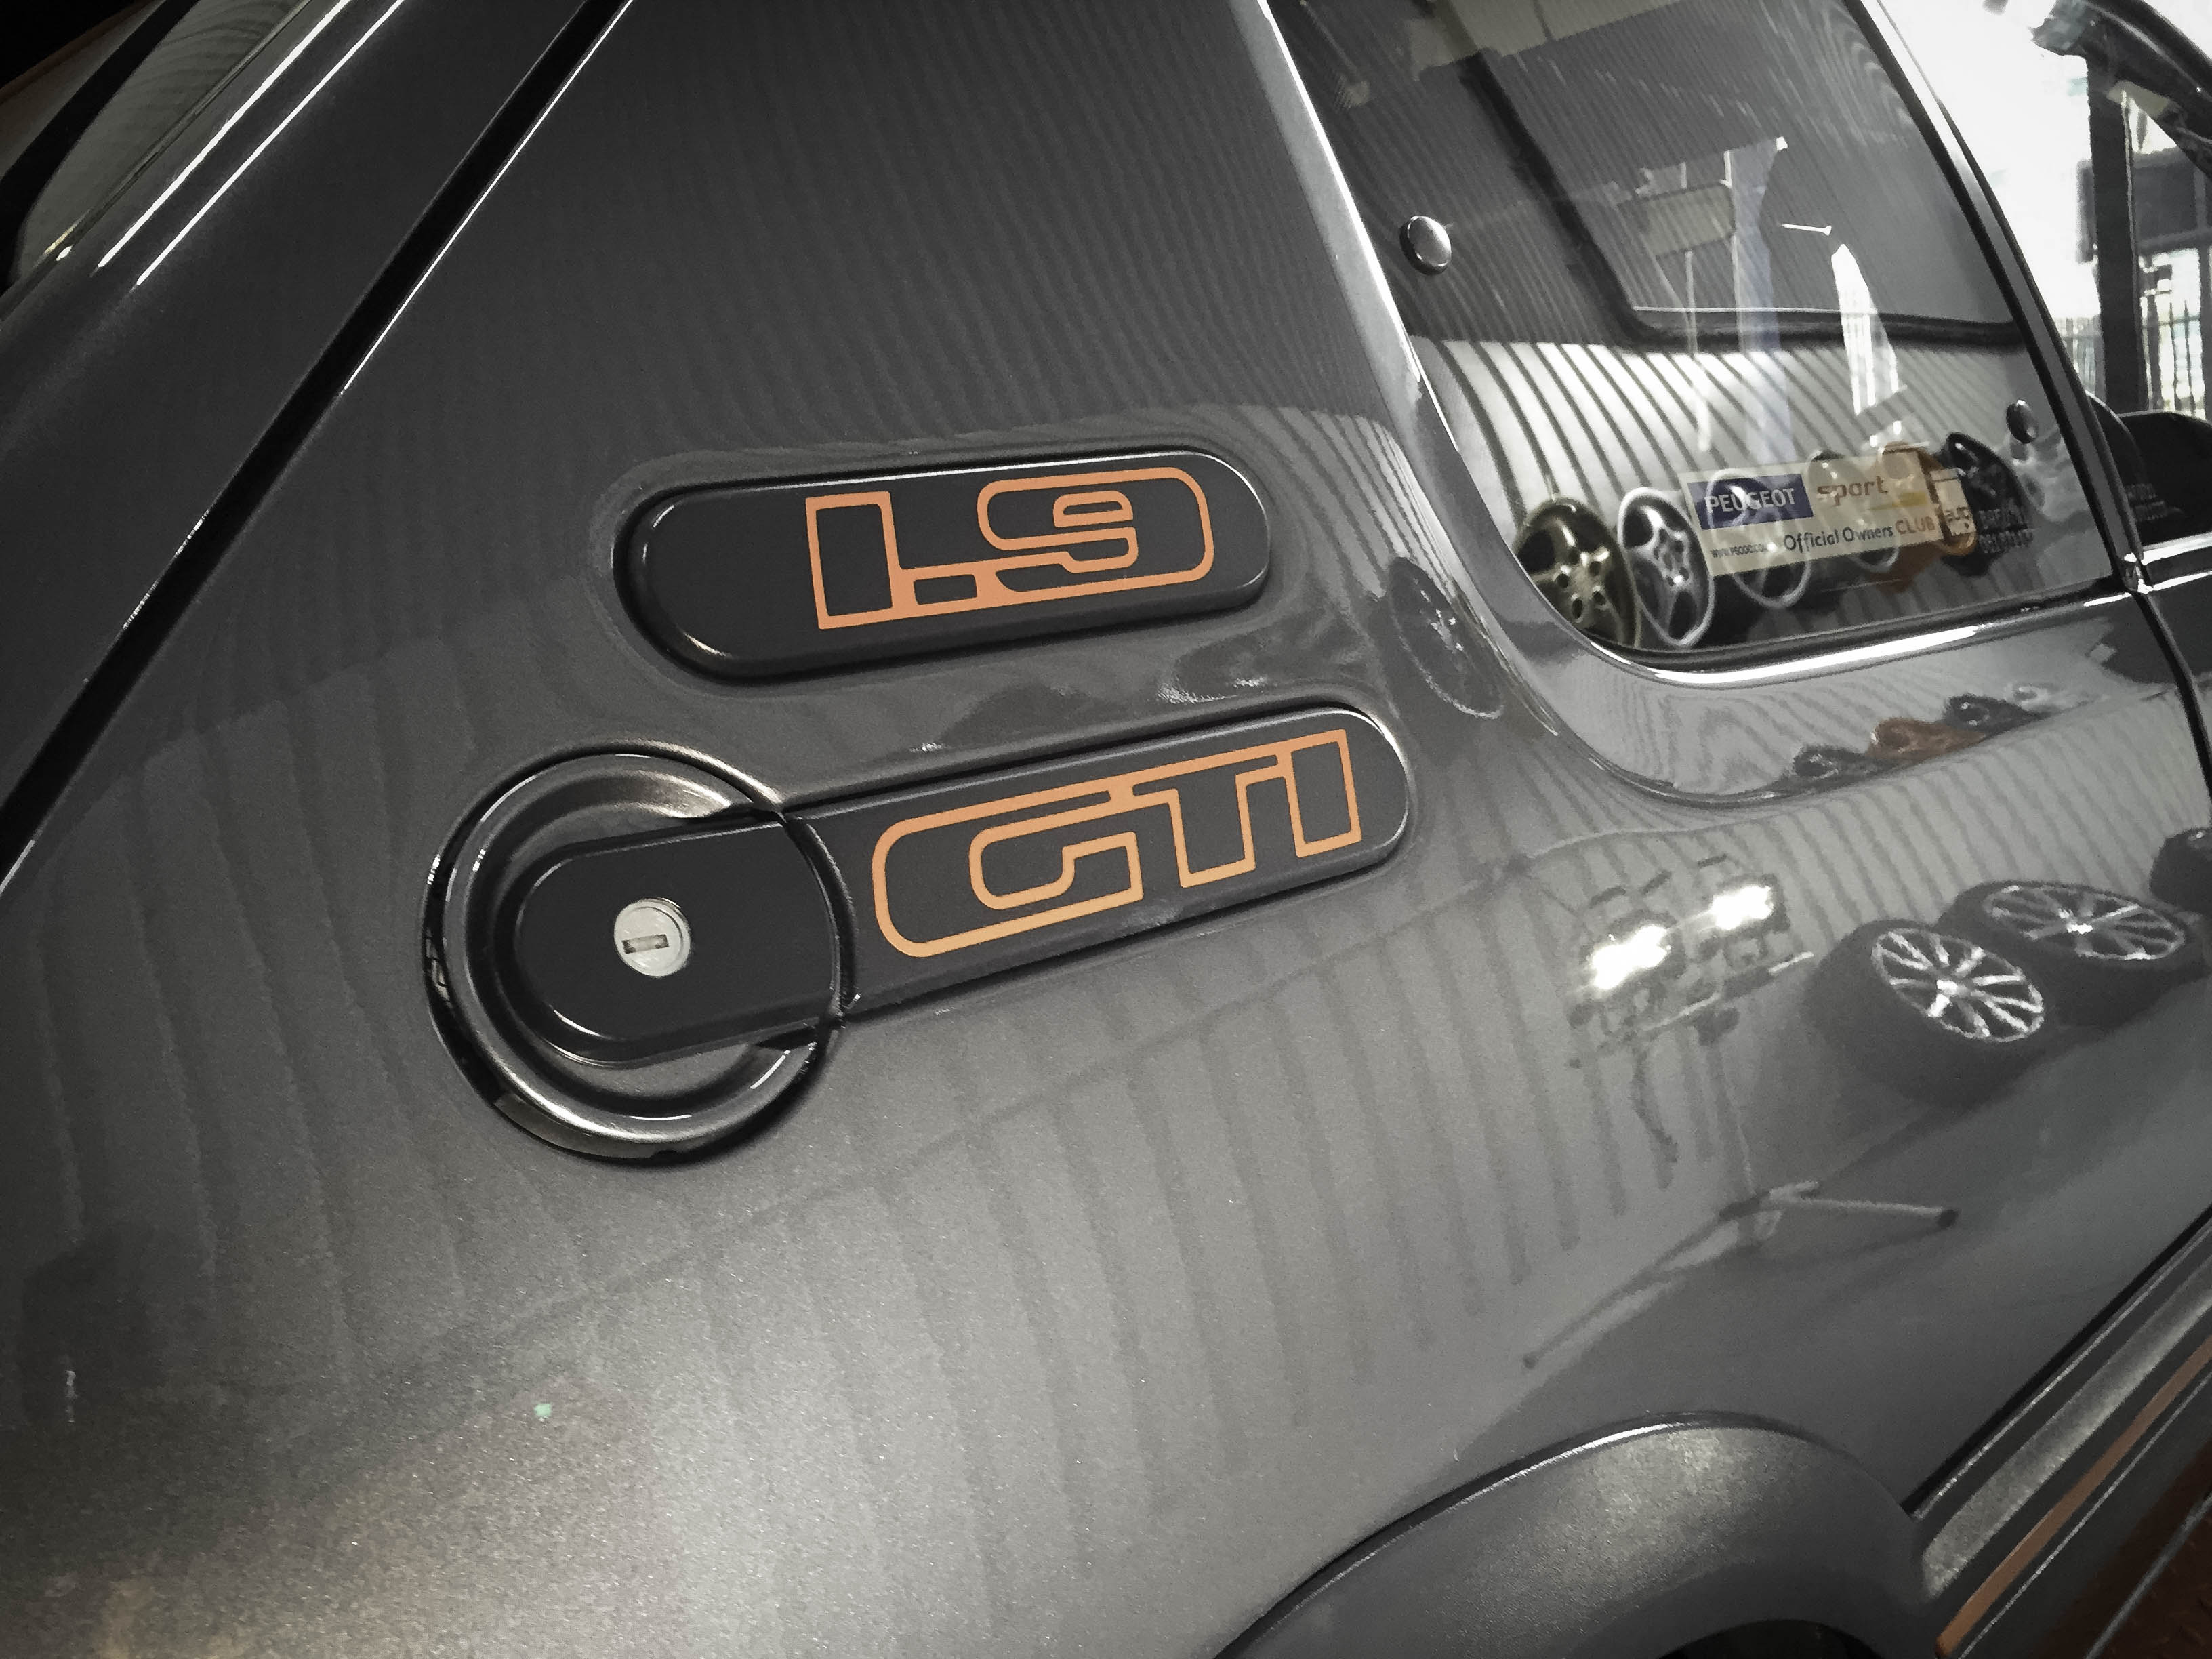 Peugot 1.9 GTi – Badges